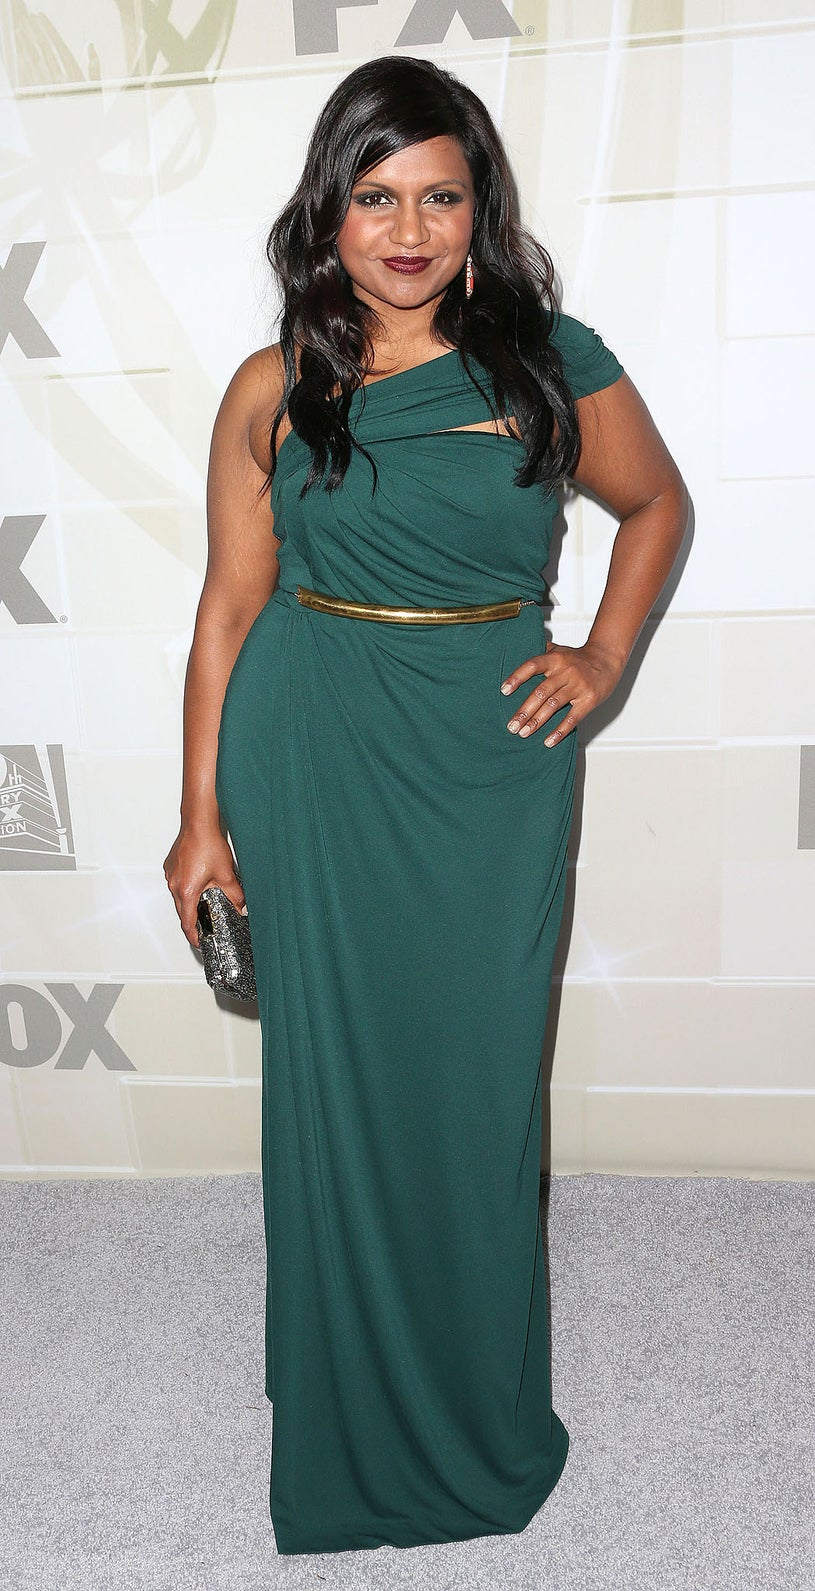 Mindy Kaling -  Fox Broadcasting Company, 20th Century Fox and FX Celebrates Their 2012 Emmy Nominees in Los Angeles, September 23, 2012